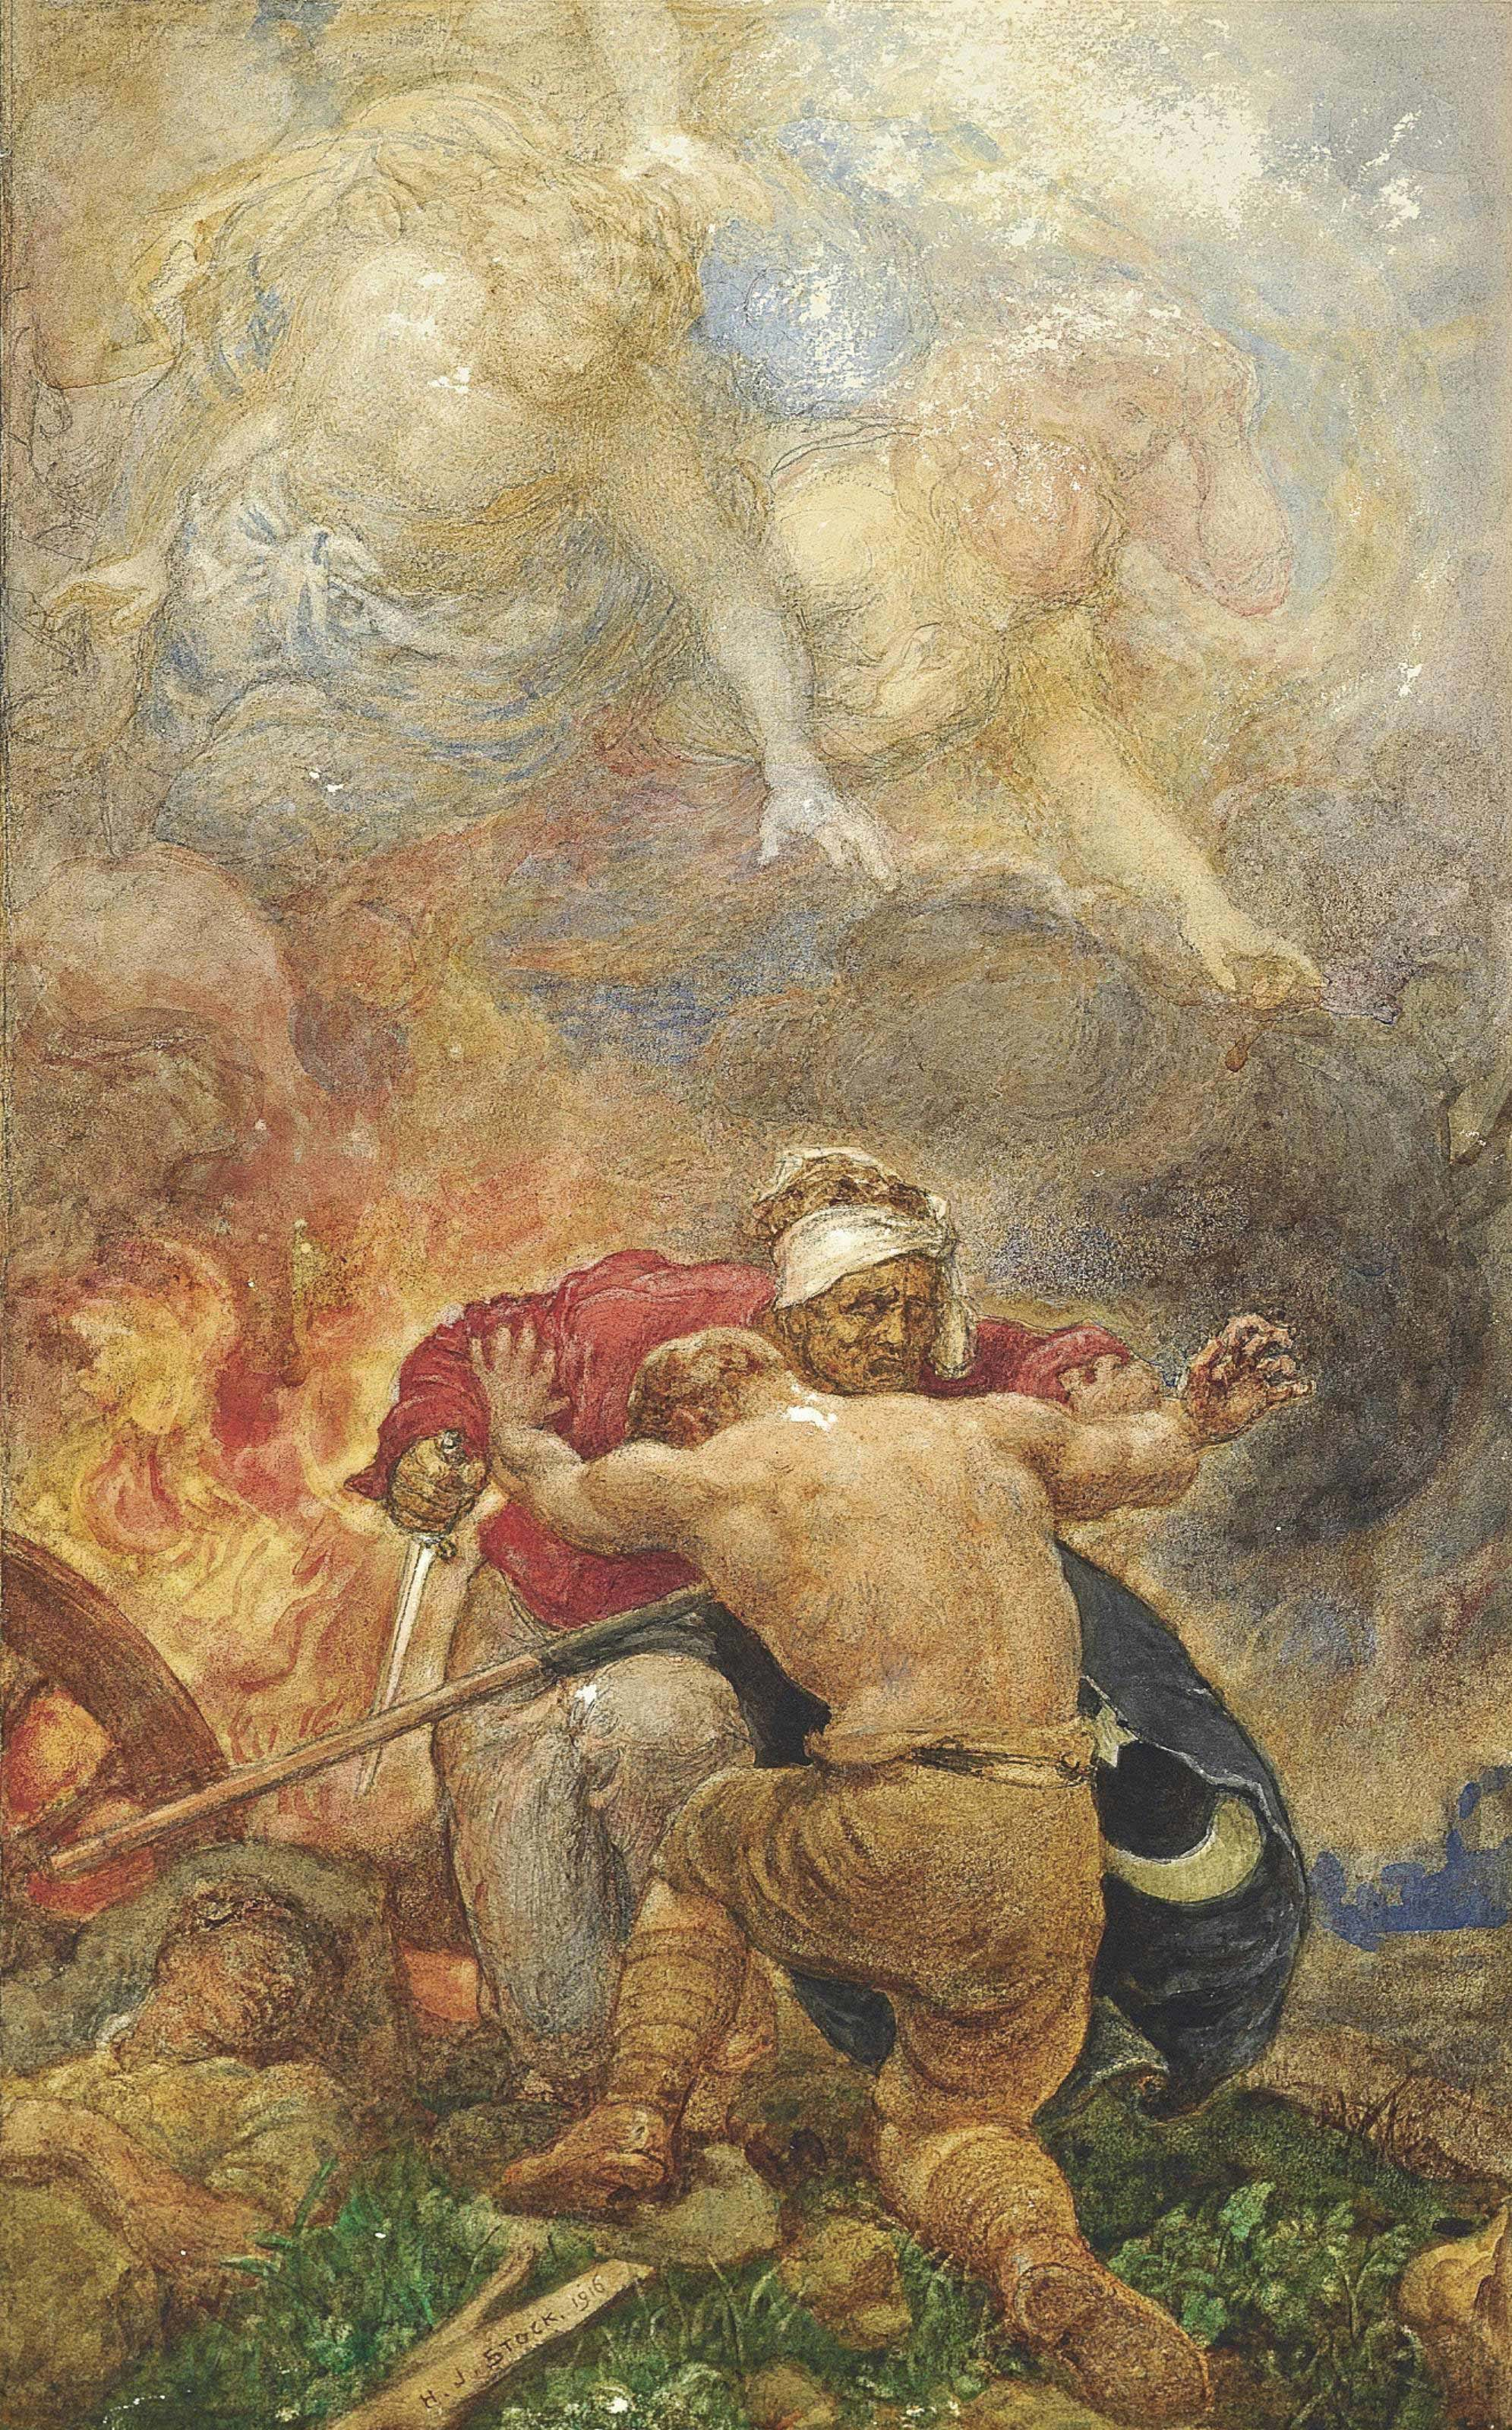 Cain and Abel: The struggle against evil